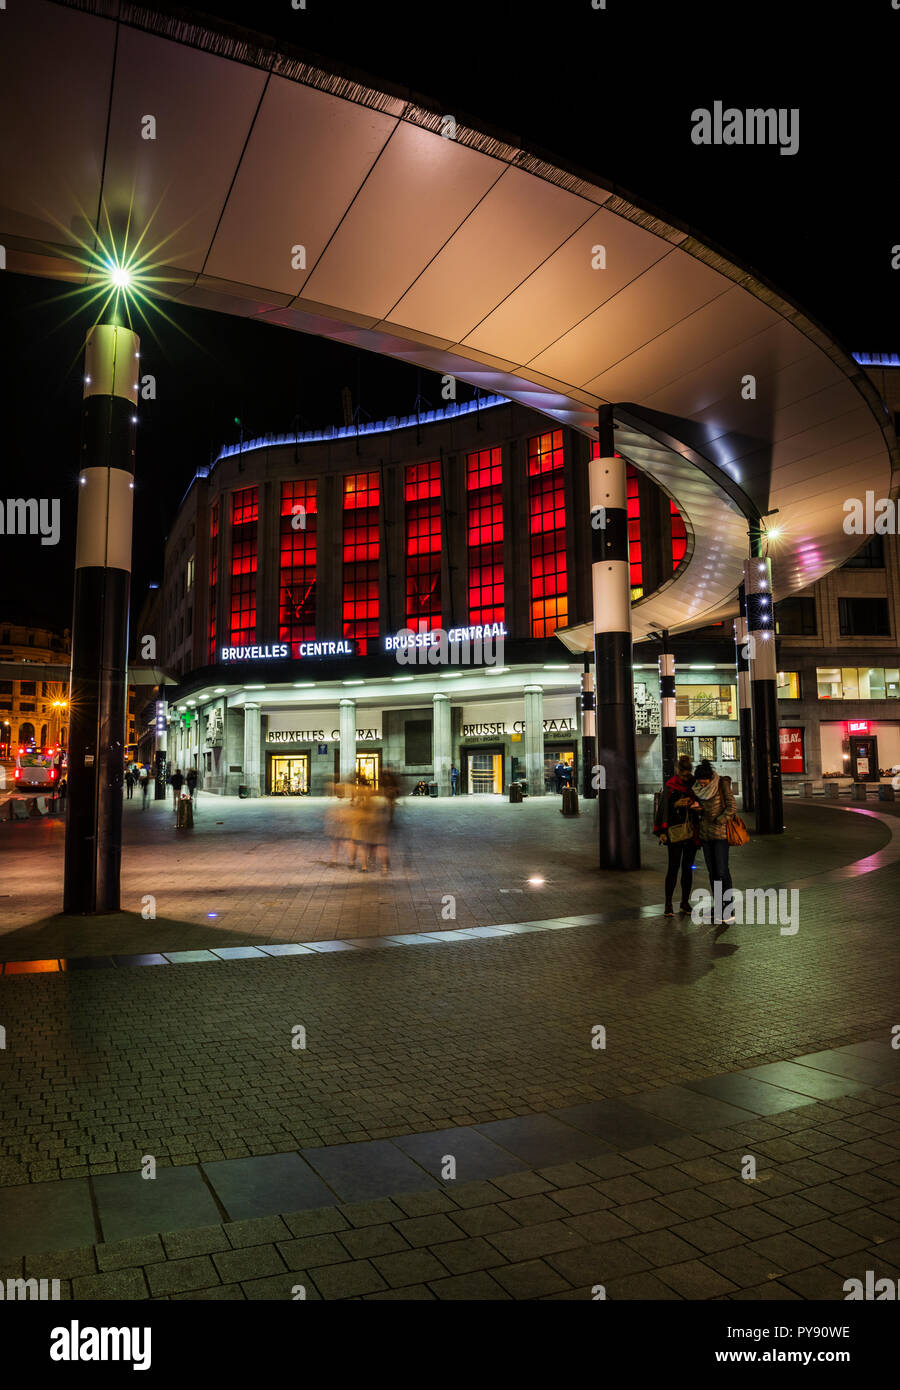 Brussel Central, Bruxelles central station in the night - Stock Image